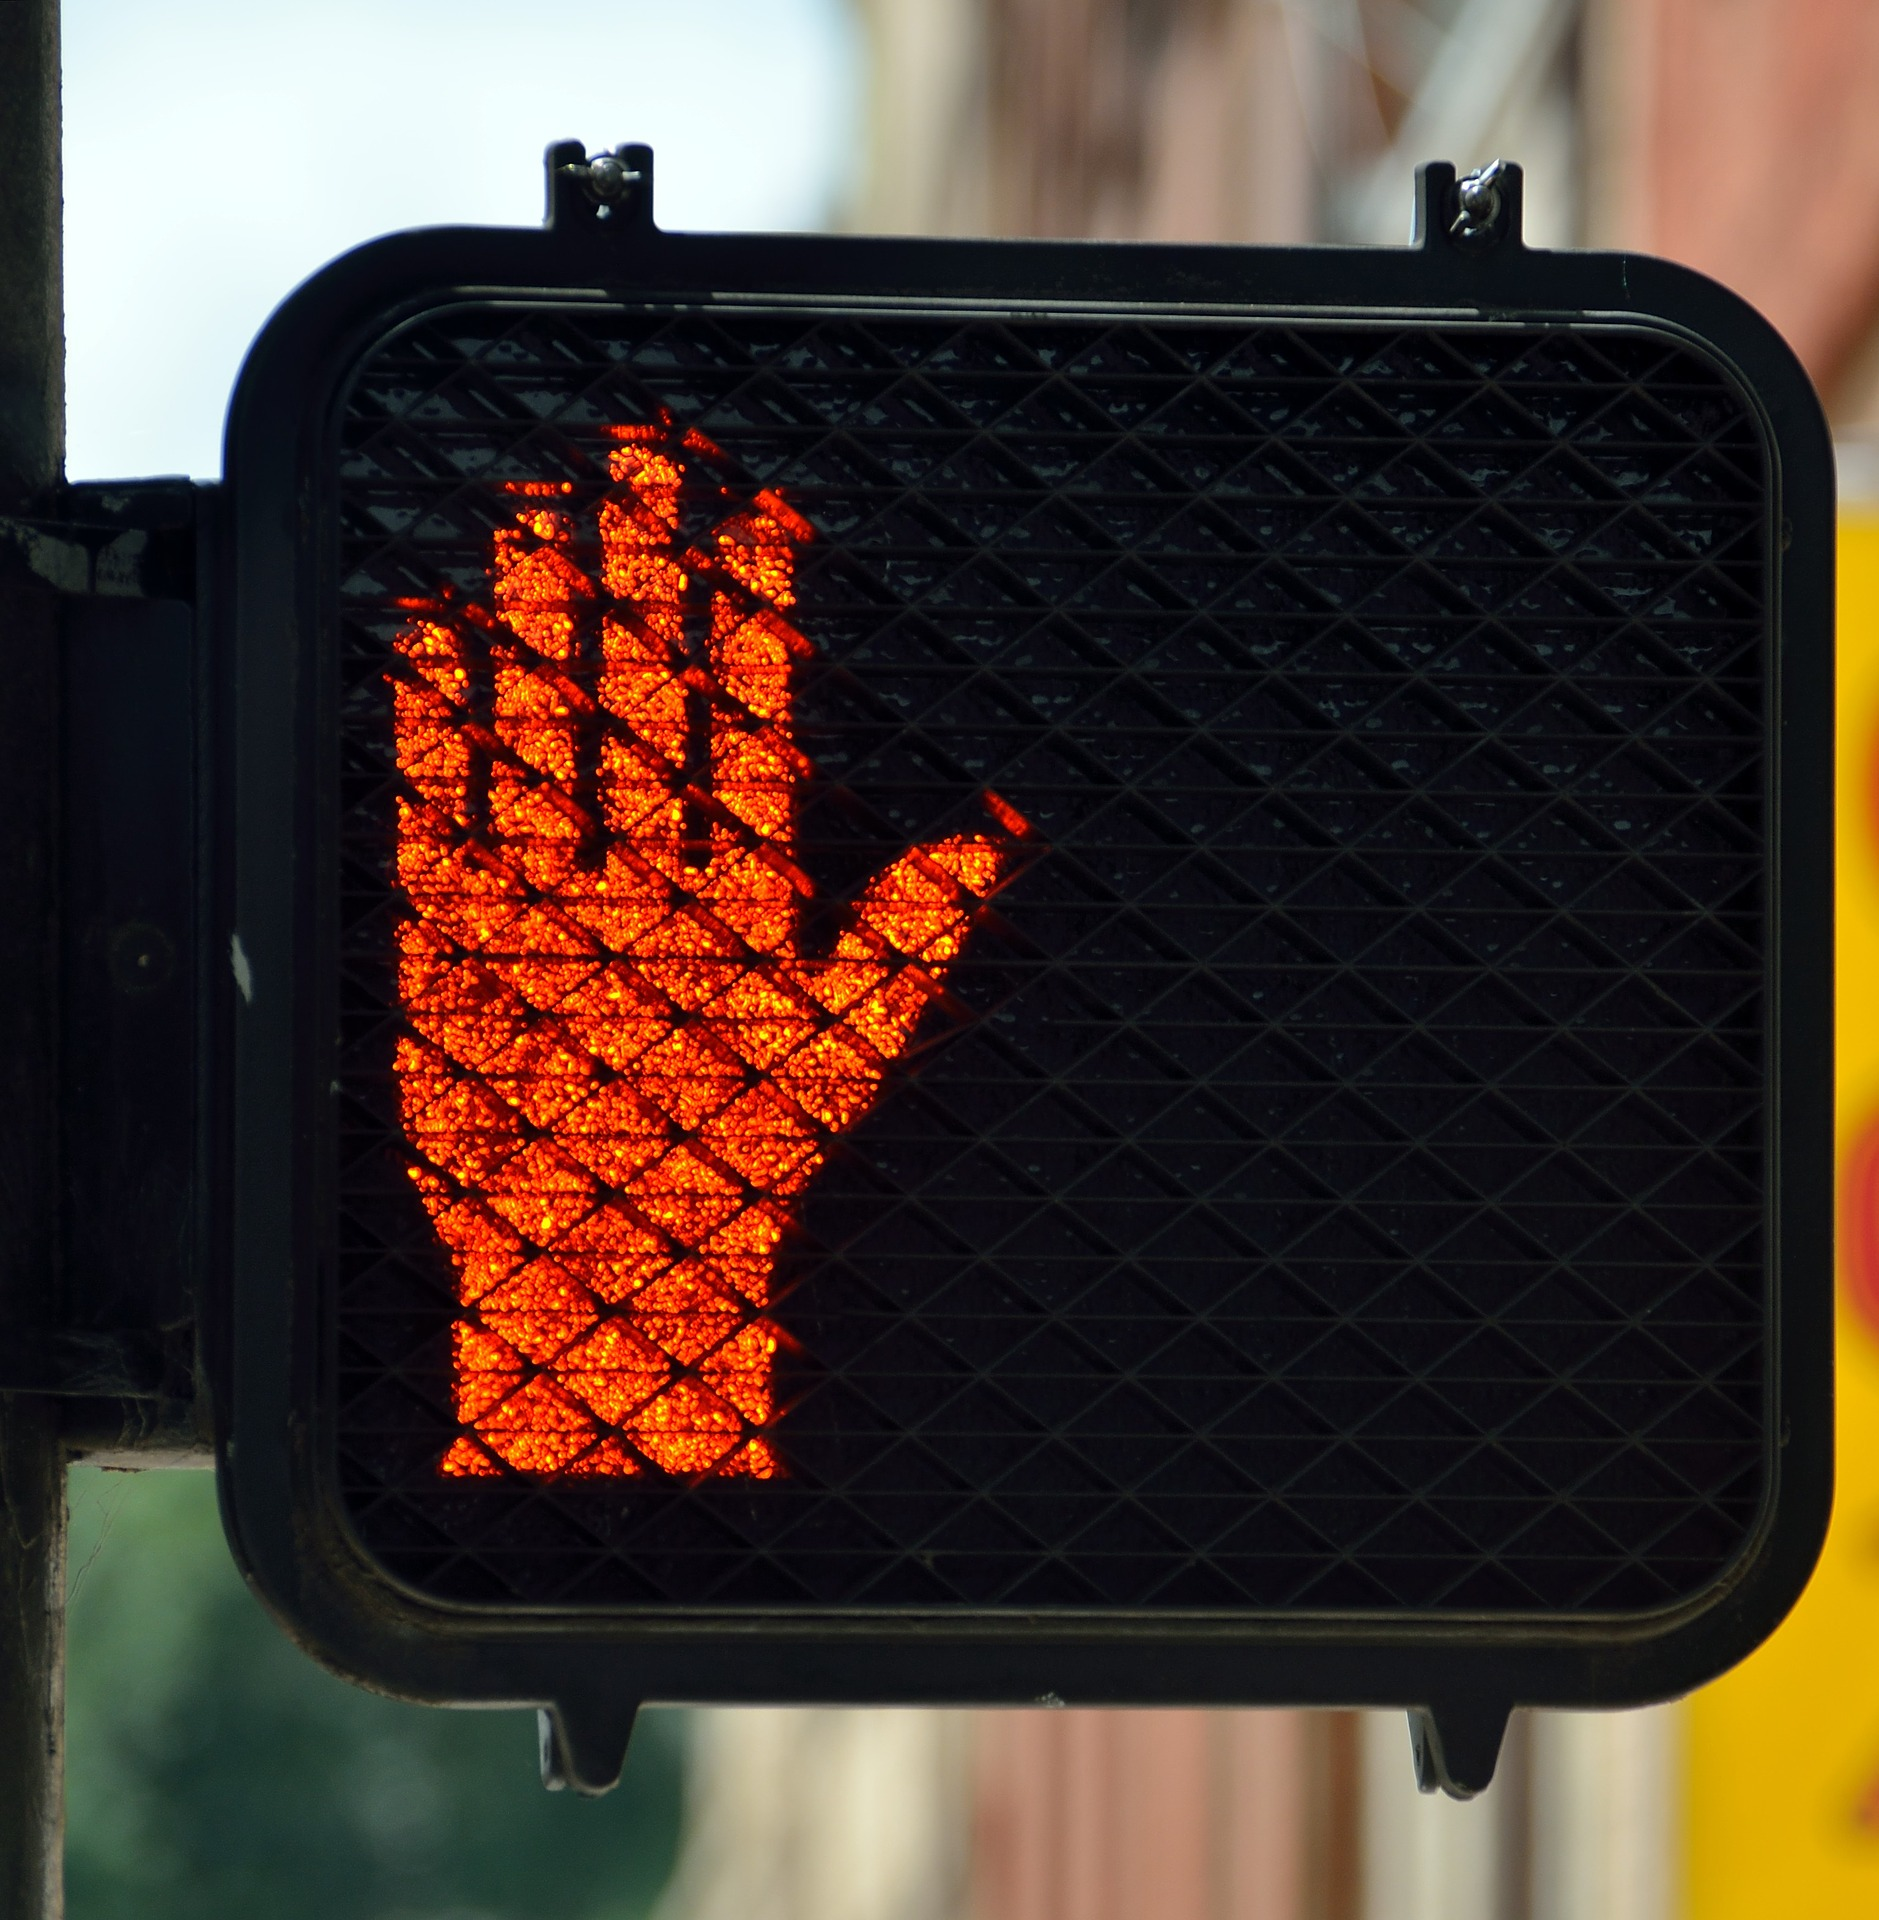 pedestrian accident lawyer in Amarillo and Lubbock